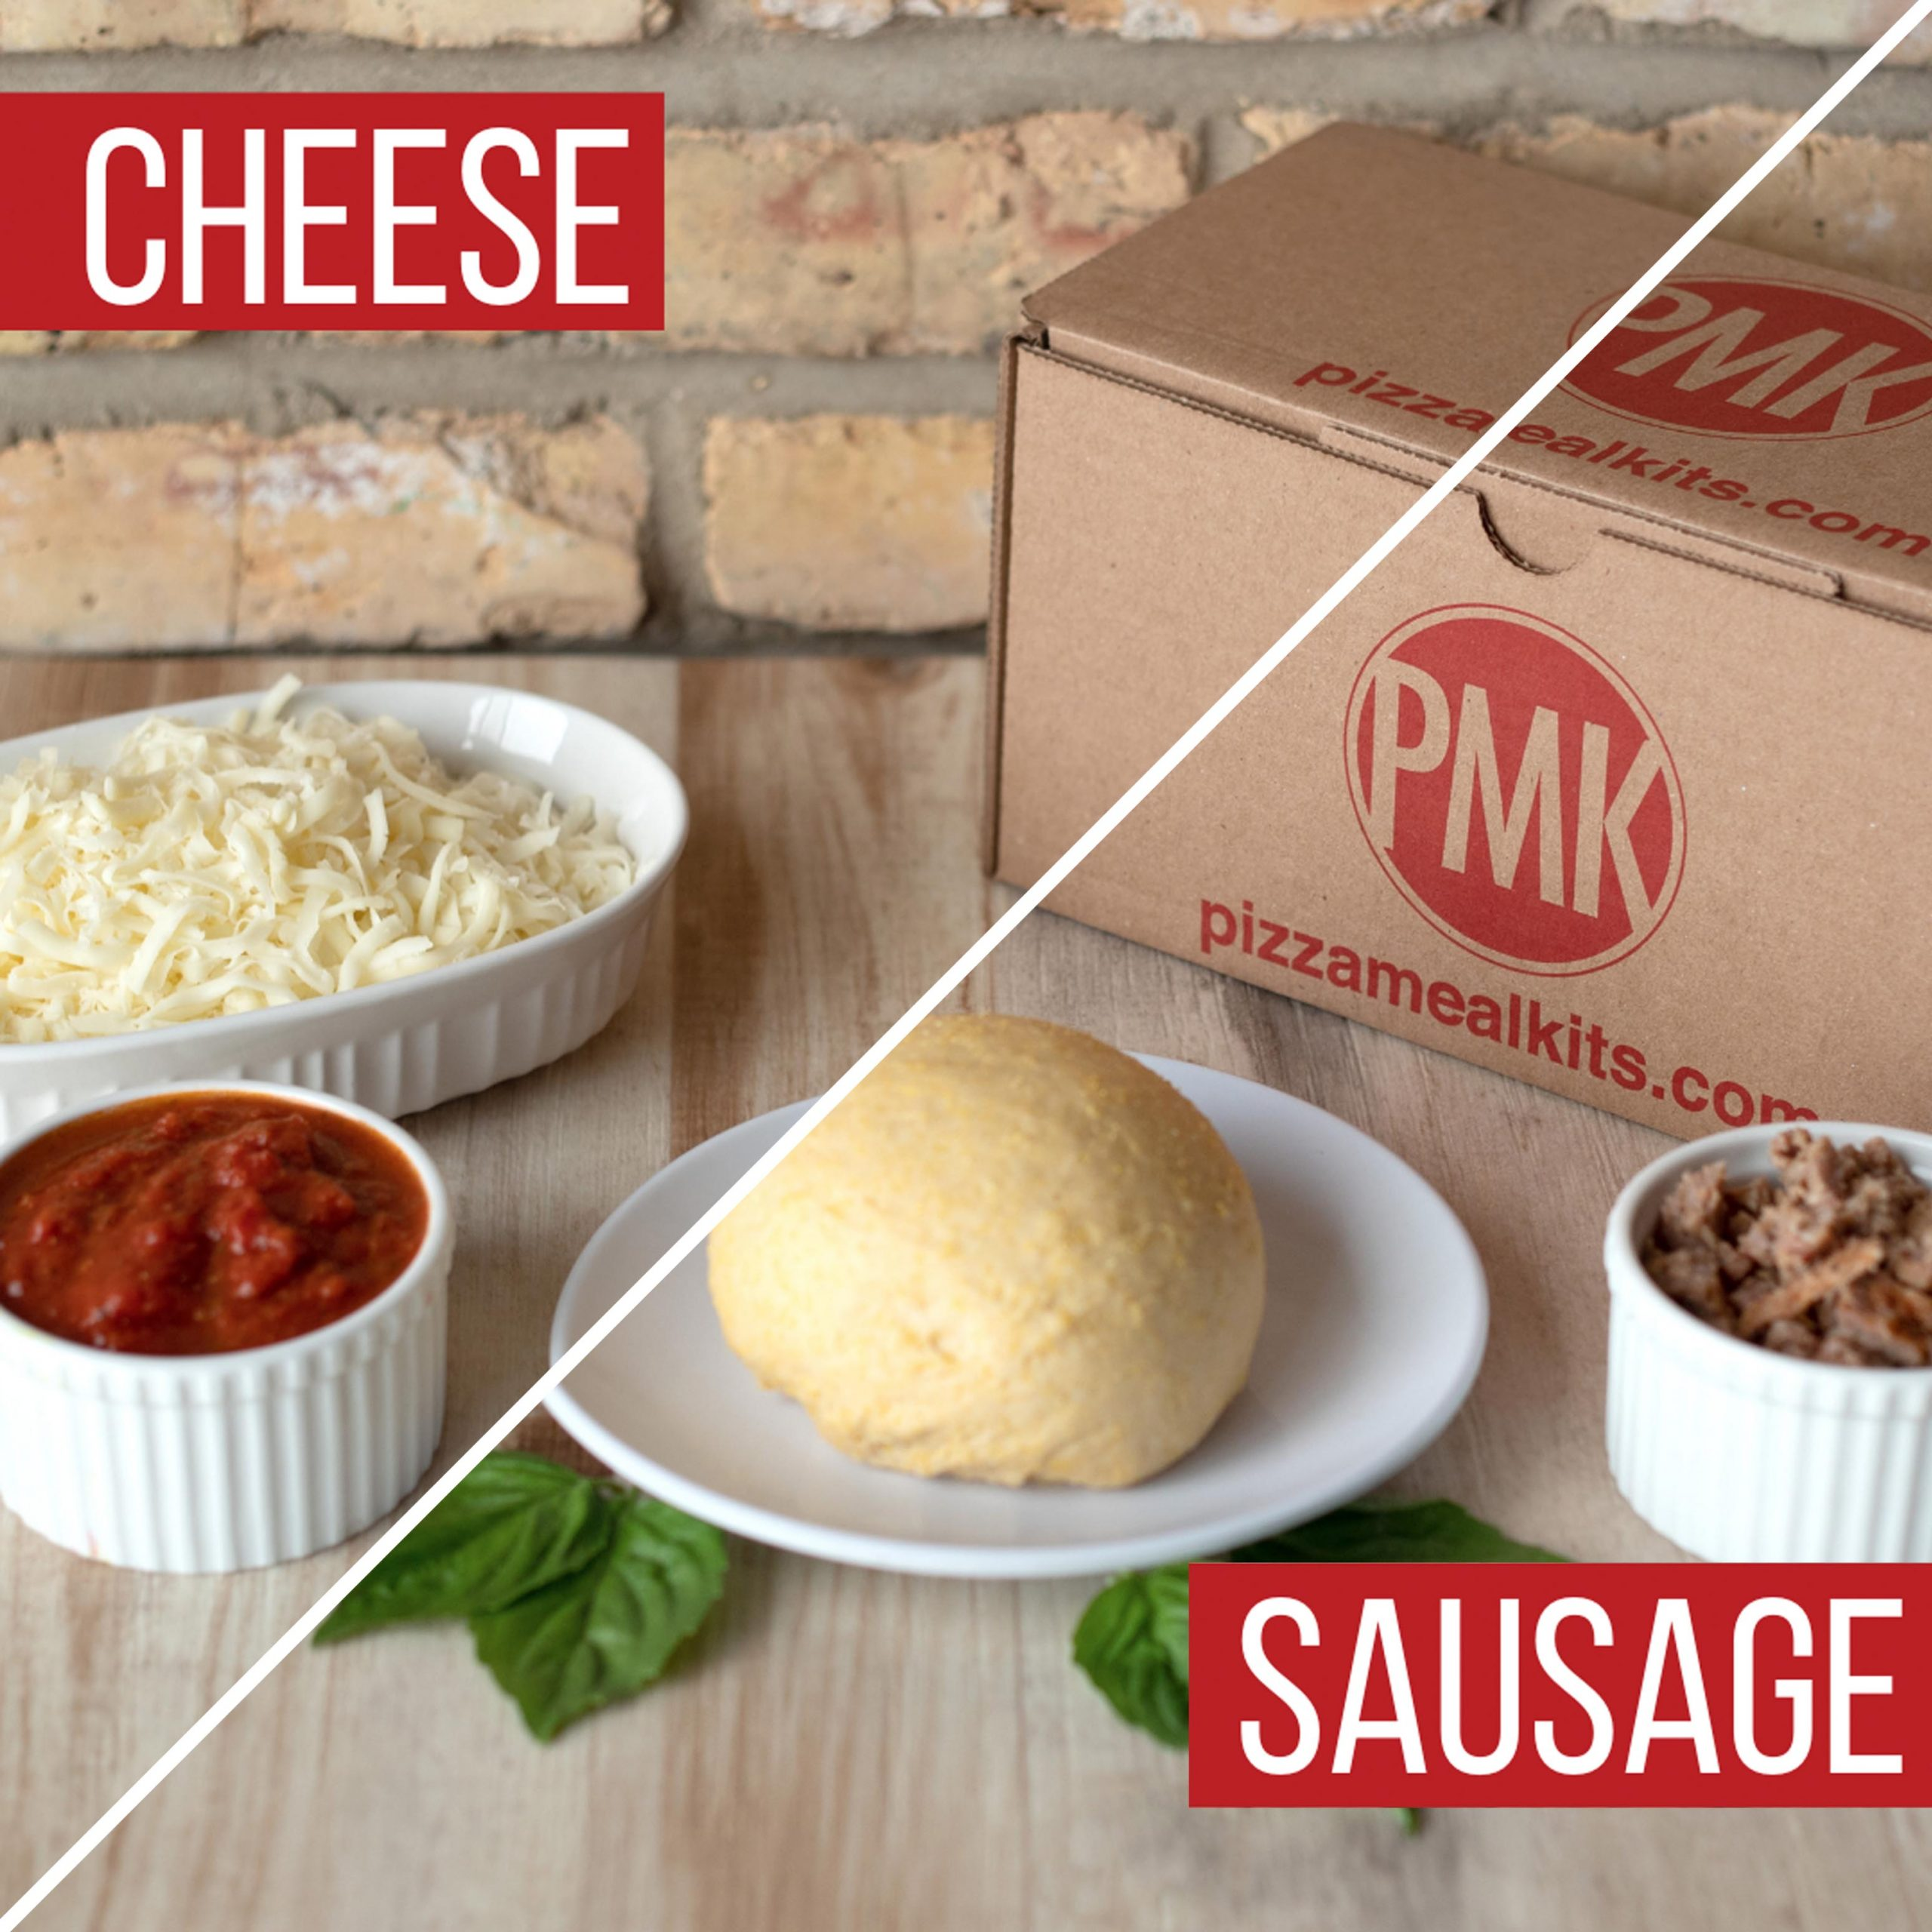 Pizza Meal Kits - Cheese & Sausage Bundle